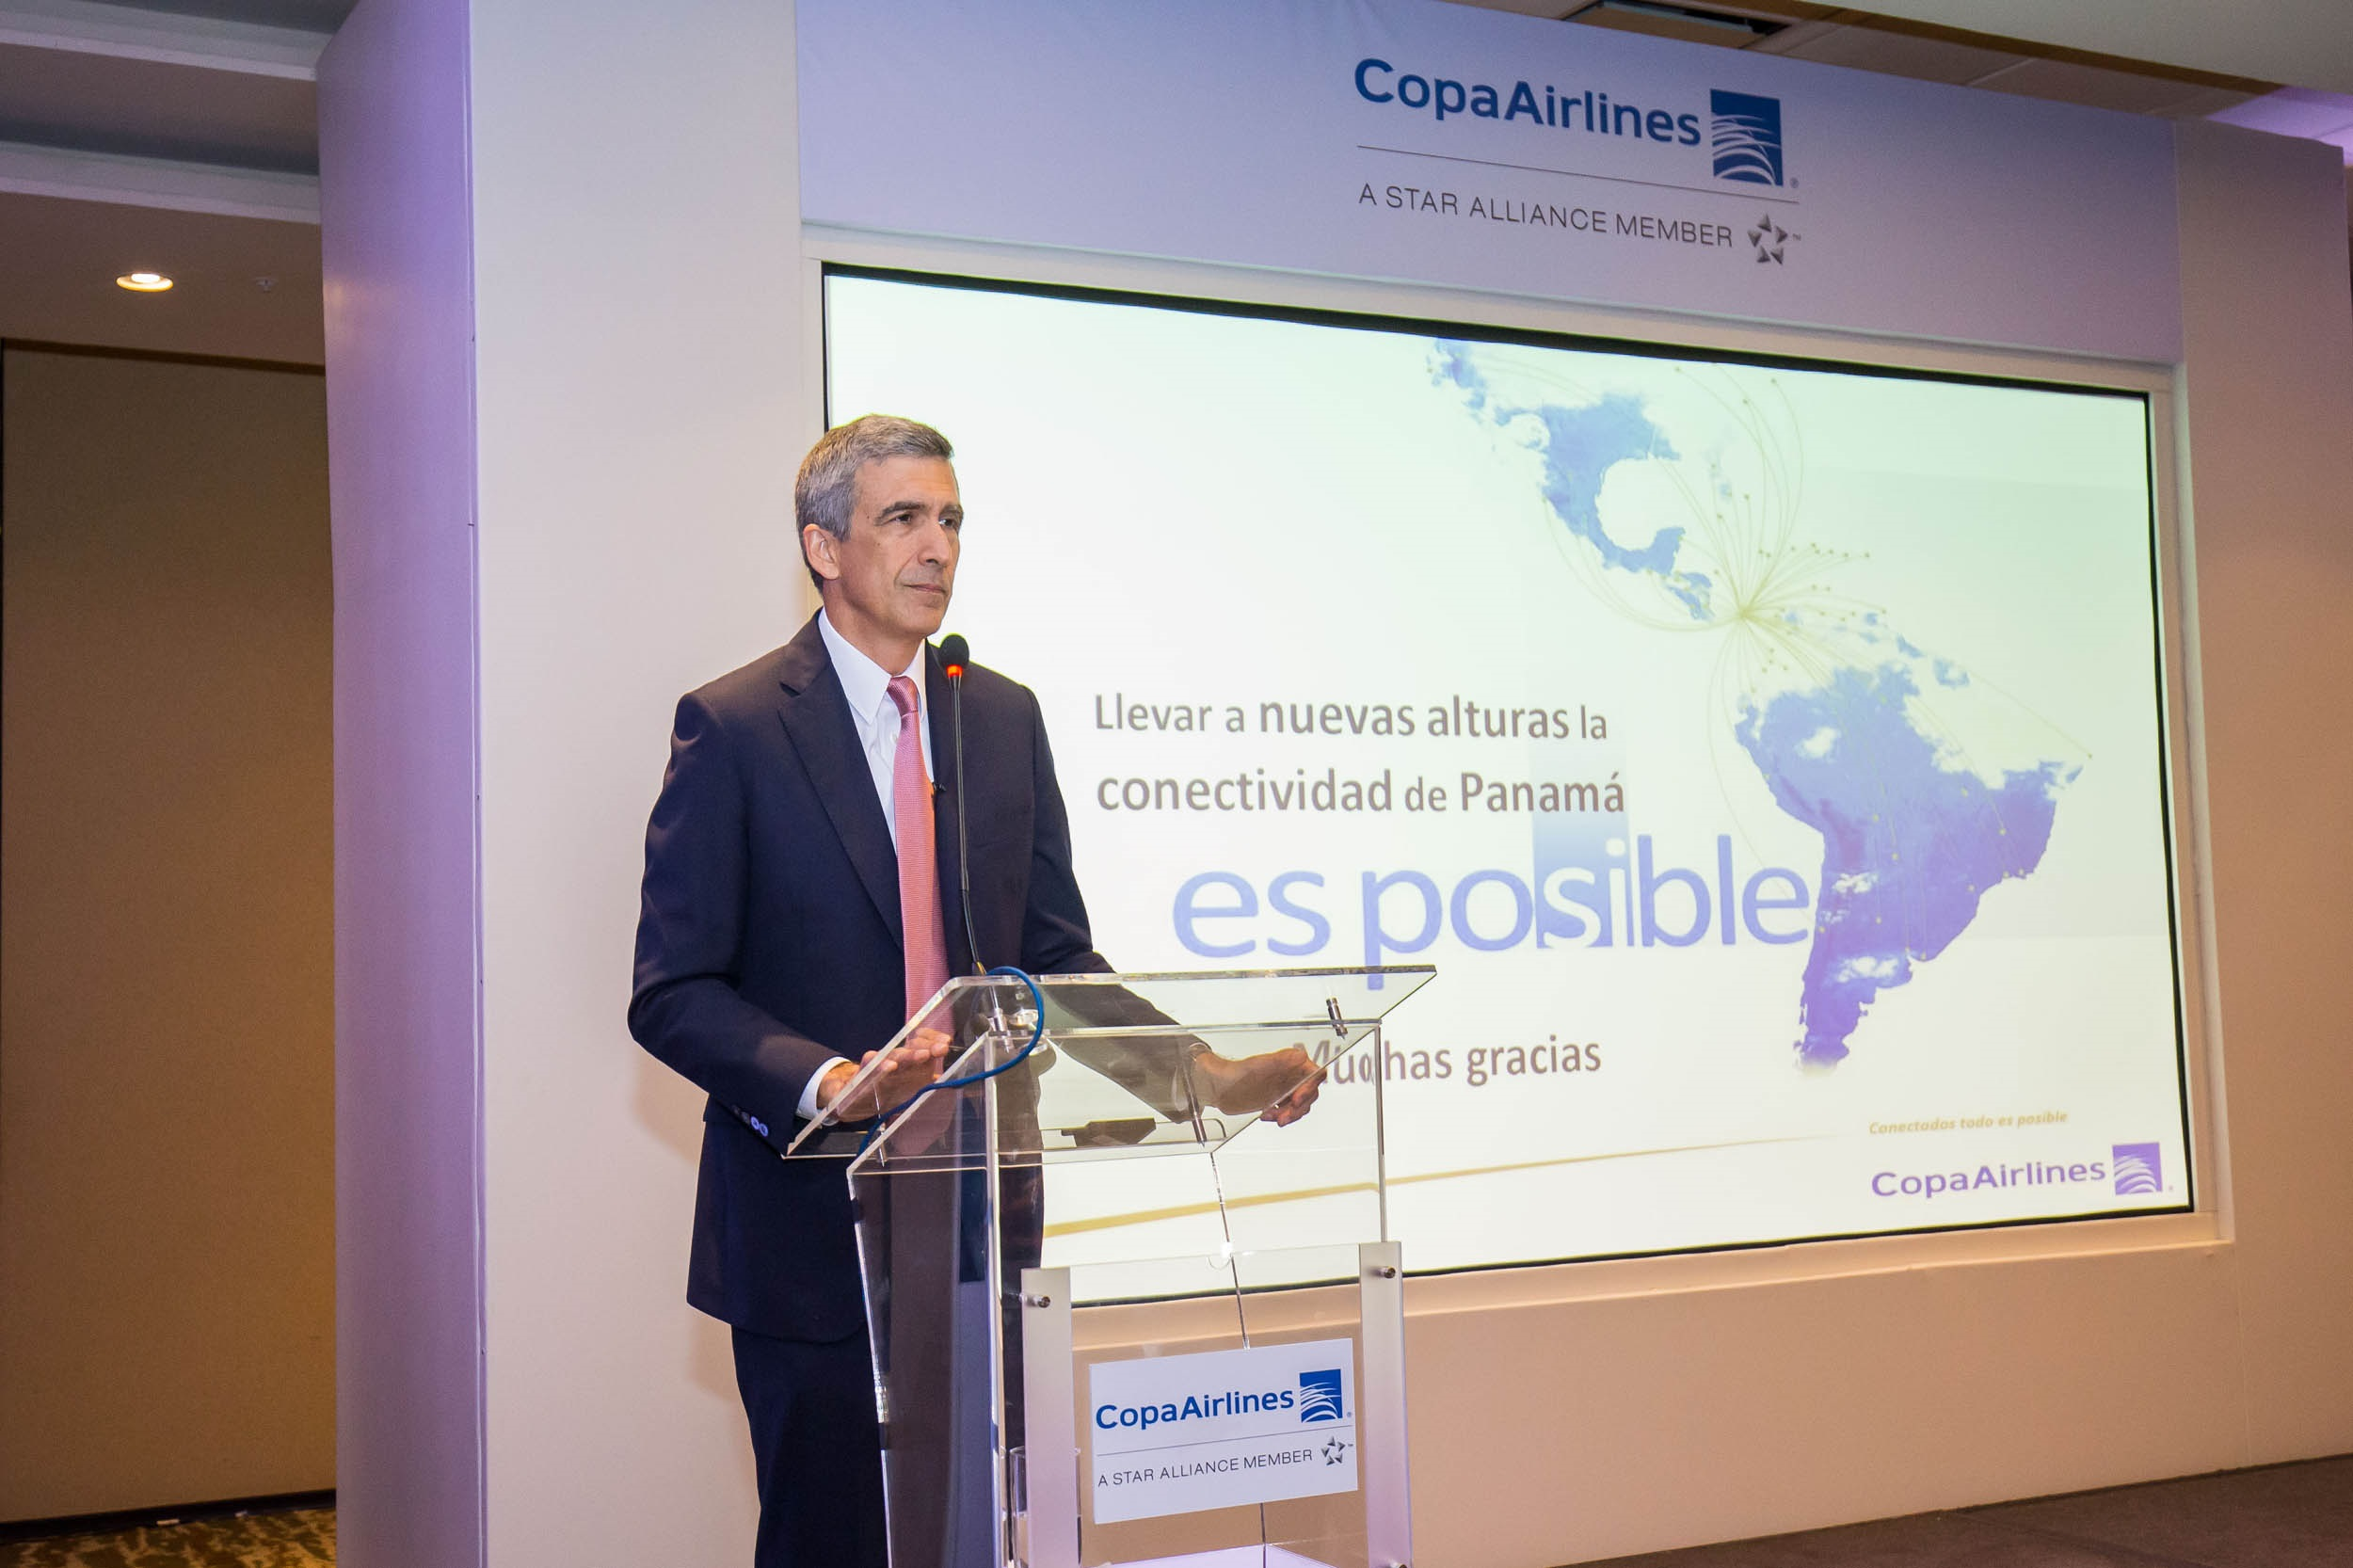 Pedro Heilbron, CEO of Copa Airlines, assumes the Presidency of ALTA